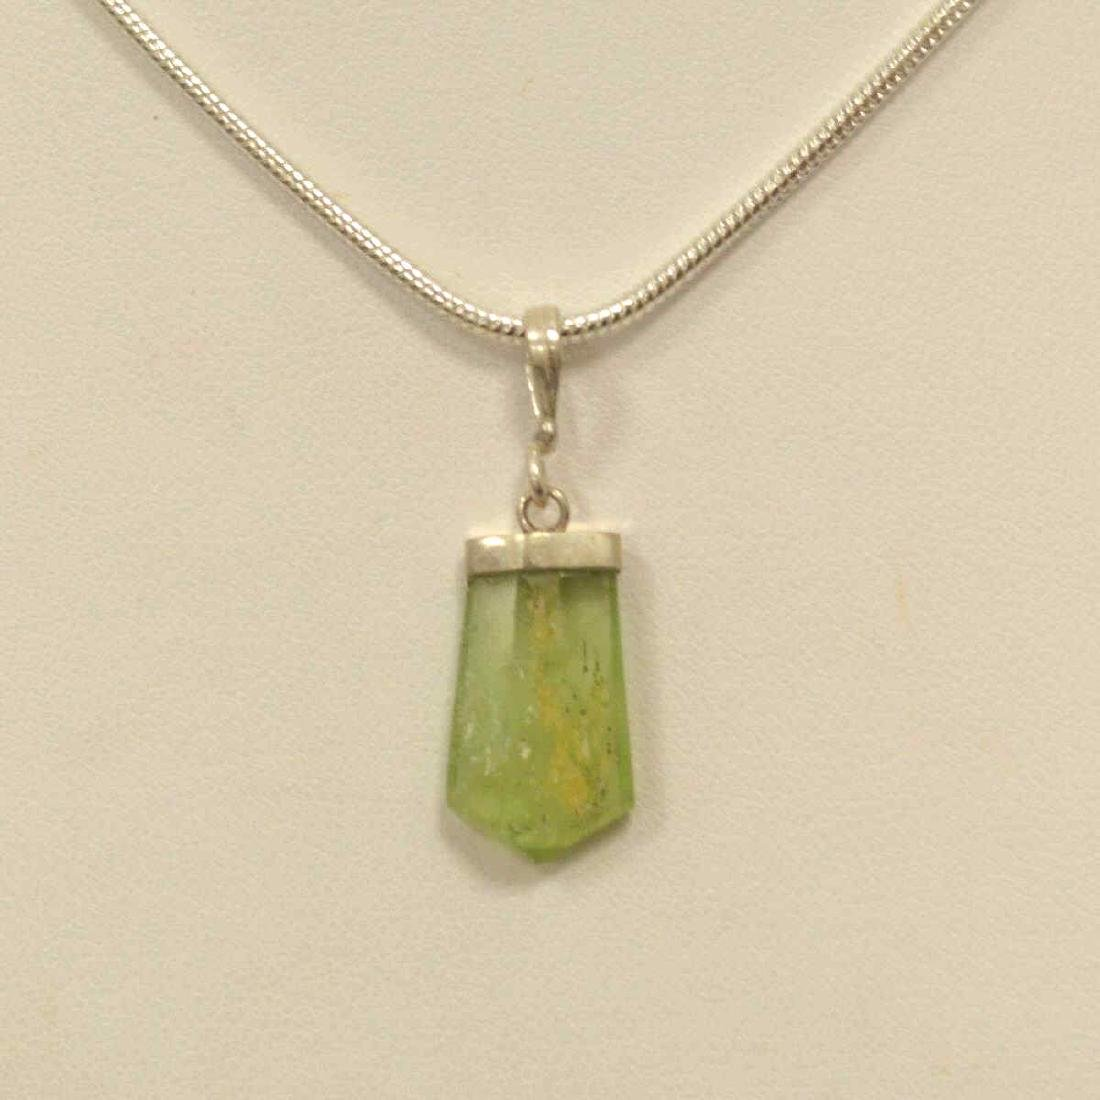 Sterling Silver Peridot Crystal Pendant - 2